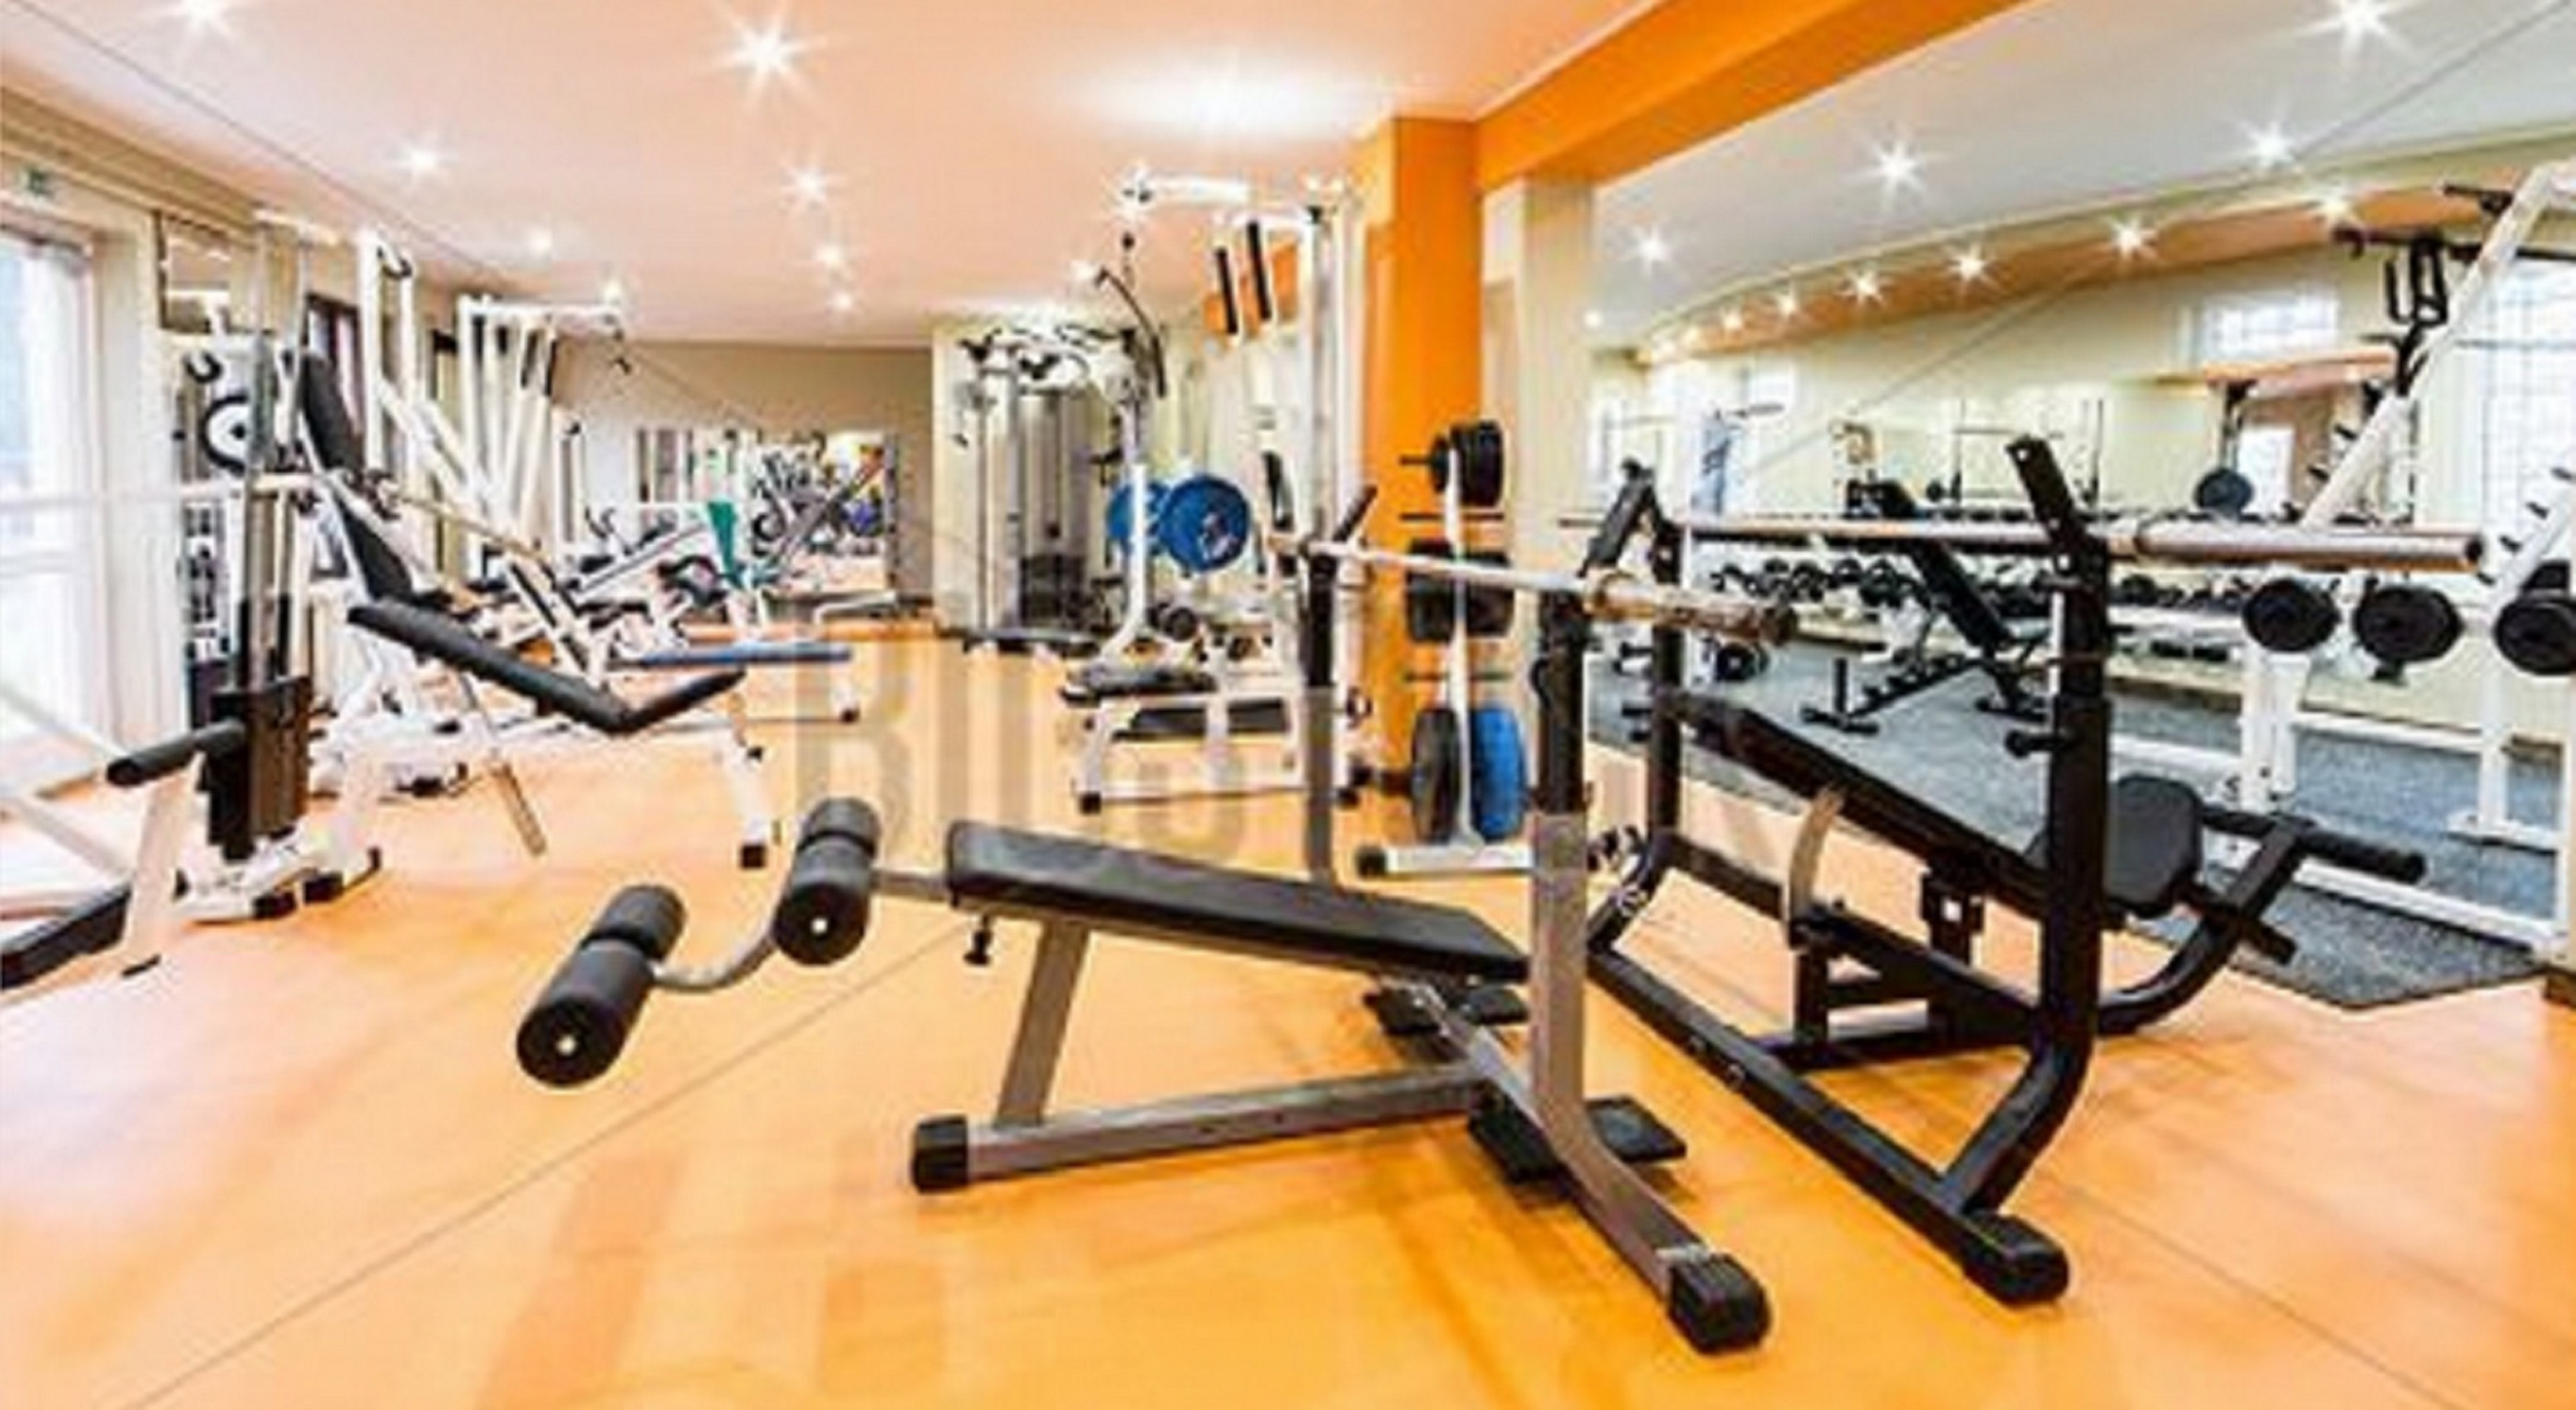 Without gravity, none of these exercise machines work.